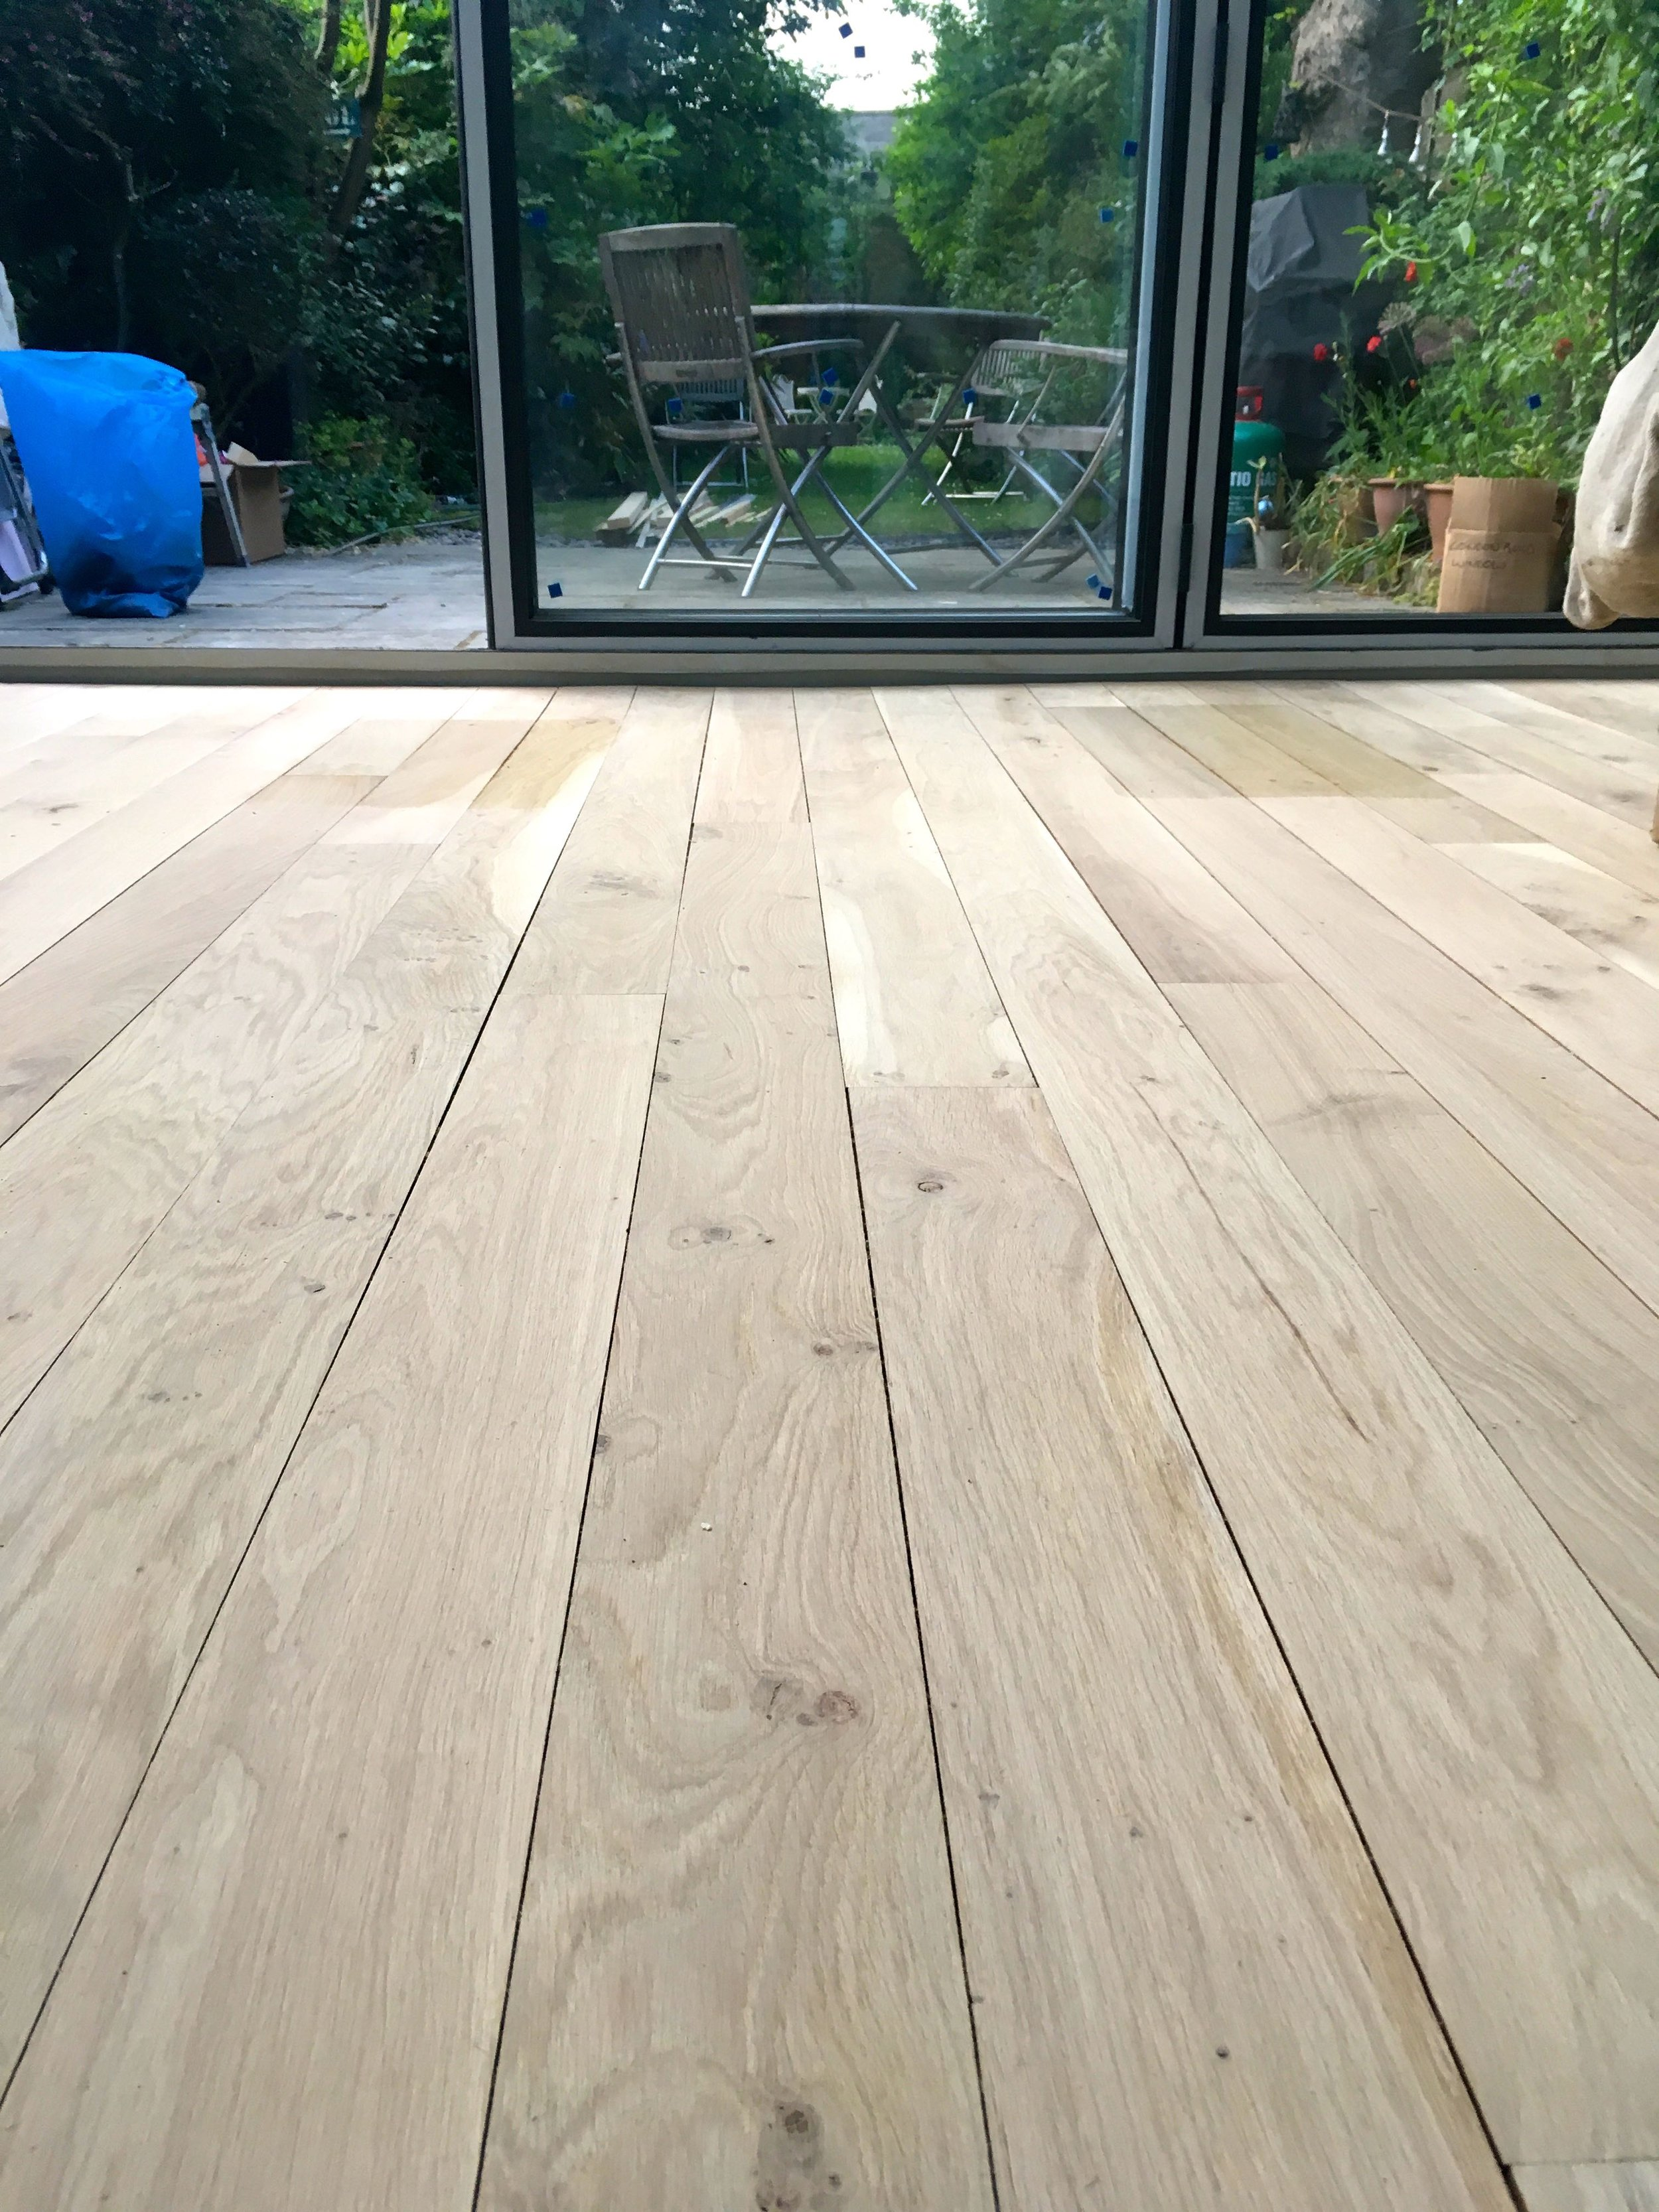 The sanded floor